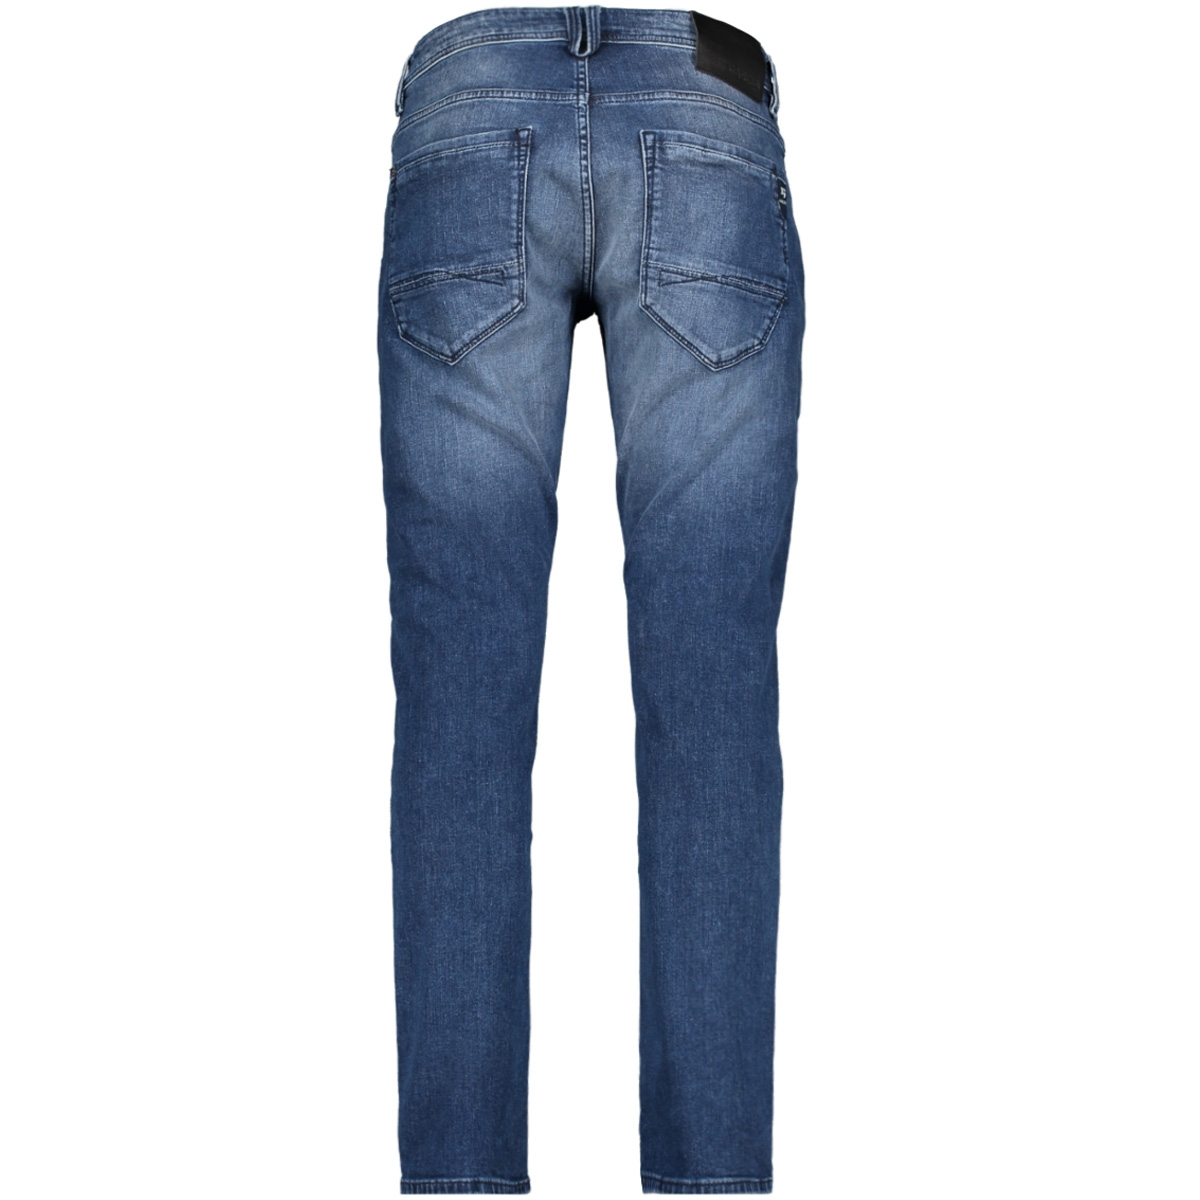 613 russo tapered garcia jeans 5803 motion denim medium used